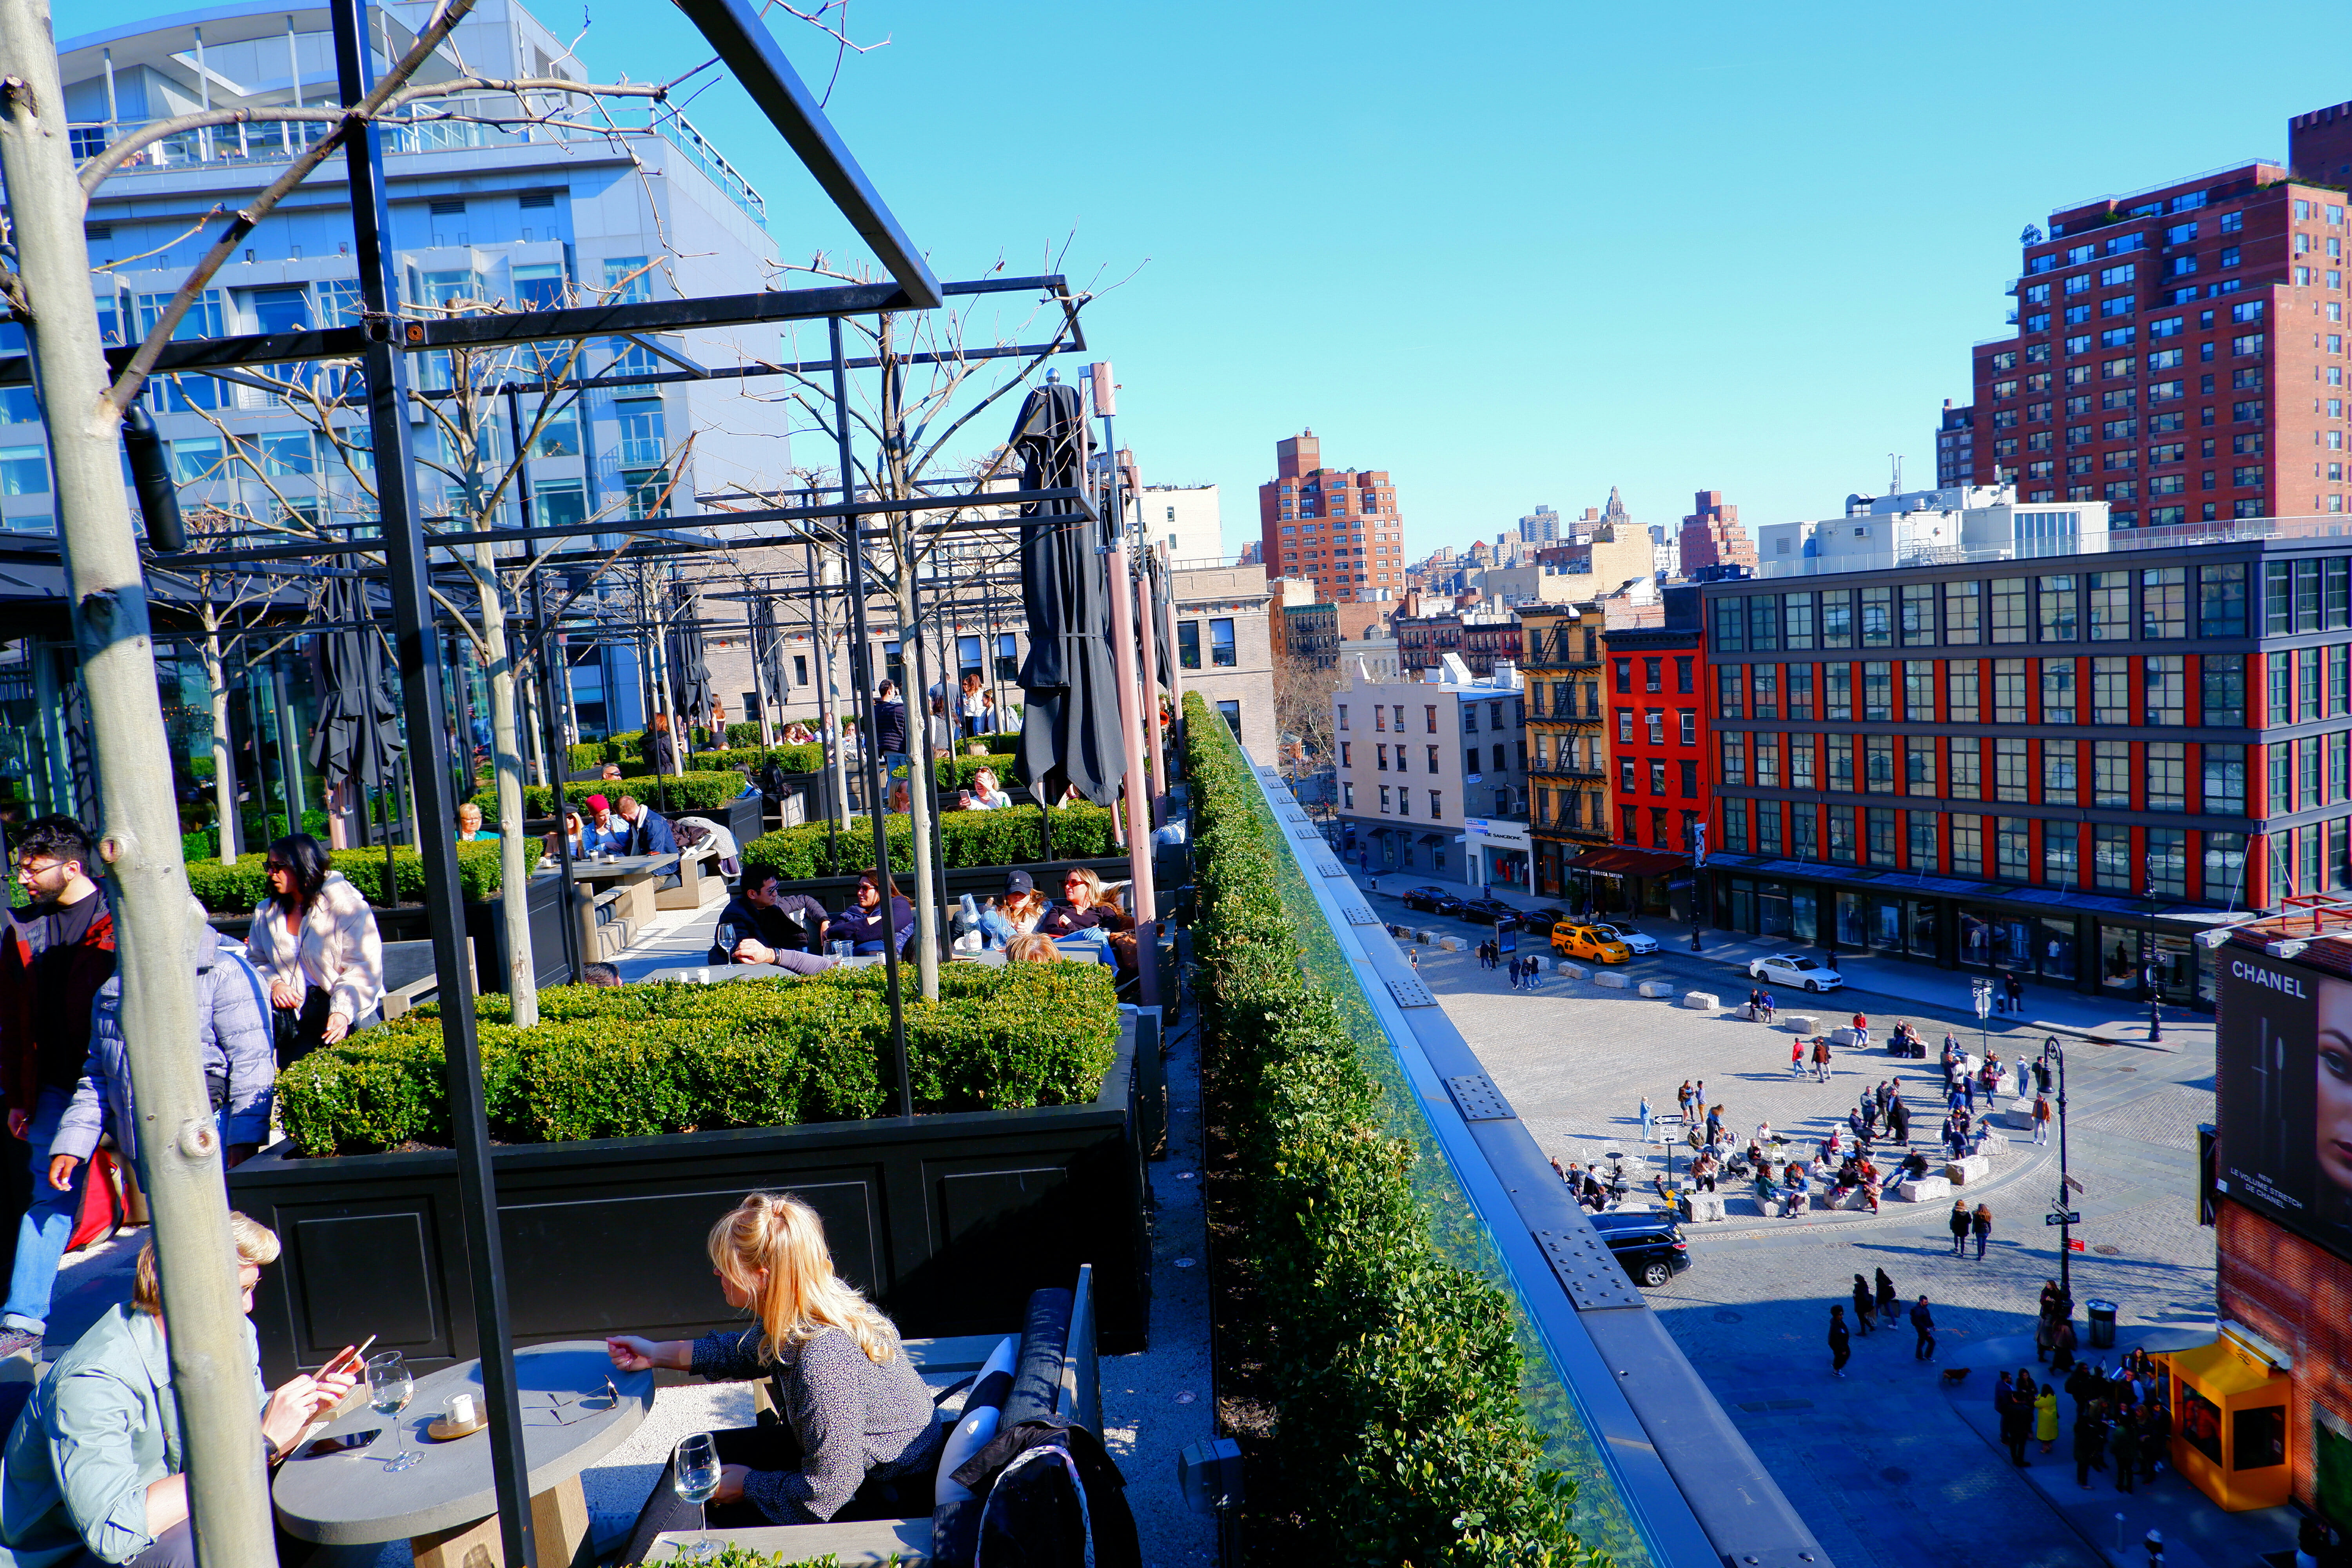 RH Store Rooftop in New York – High Quality Wallpaper